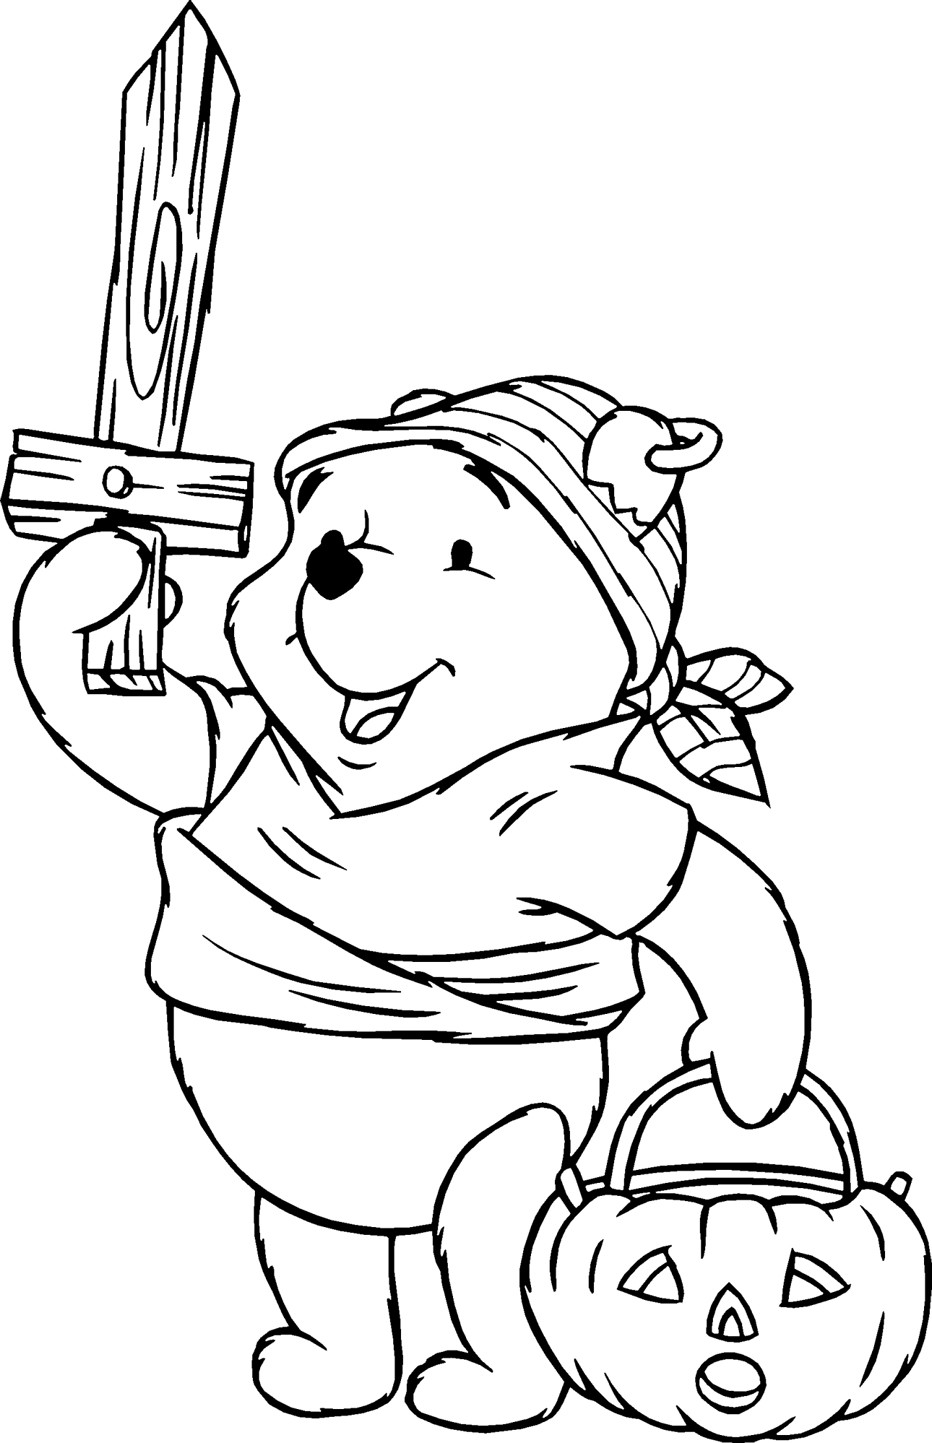 halloween coloring pages online free printable halloween coloring pages for teenagers online coloring pages halloween